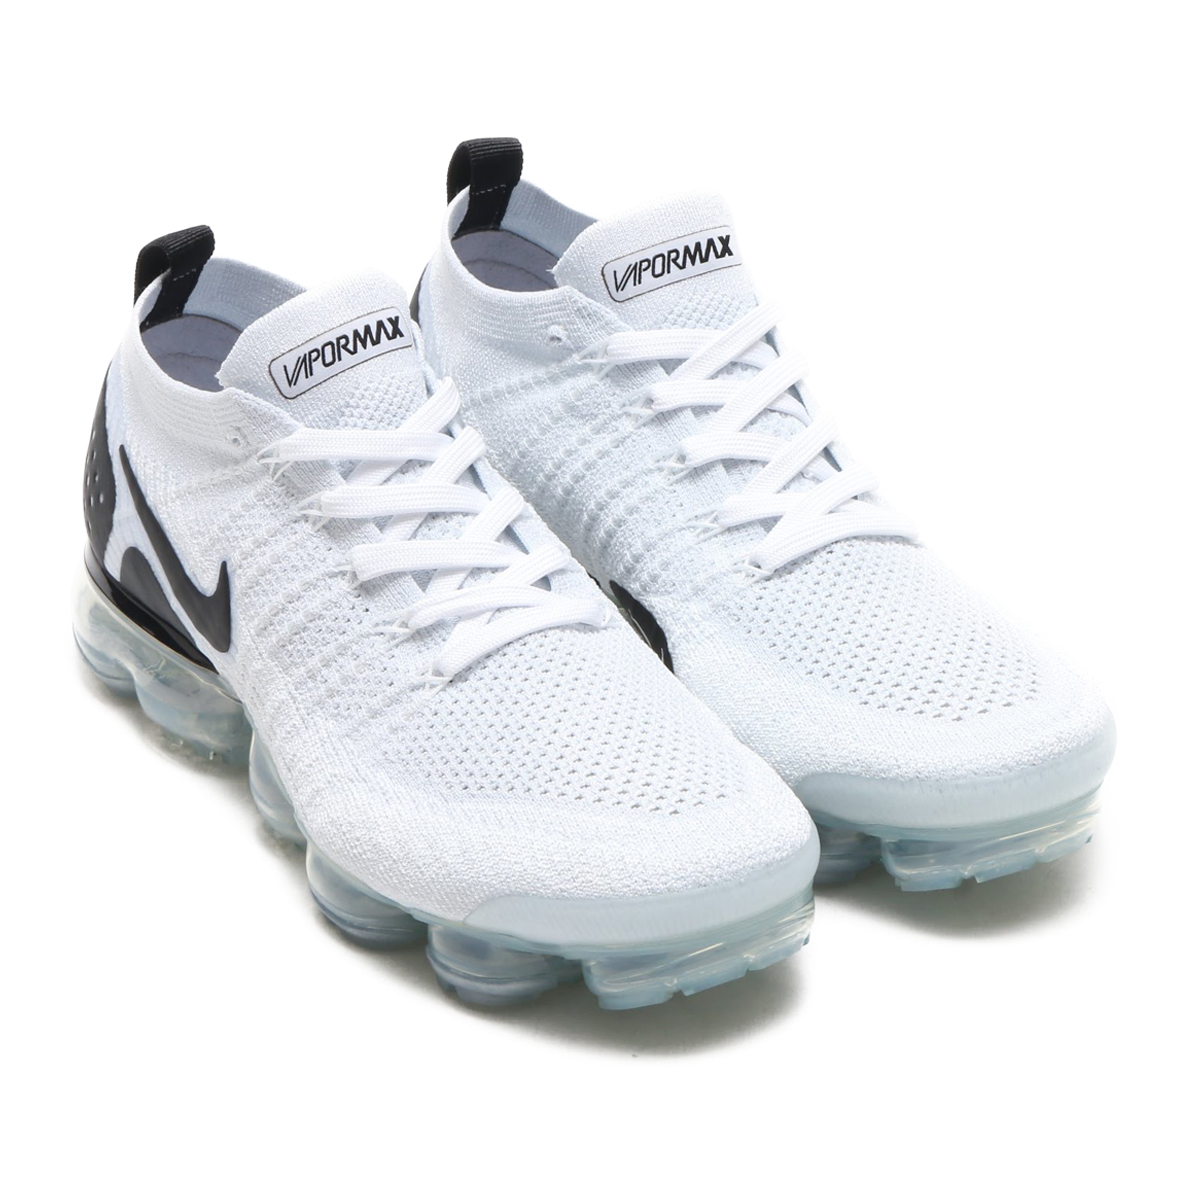 f1641678ad6e NIKE AIR VAPORMAX FLYKNIT 2 (Nike air vapor max fried food knit 2) (WHITE  BLACK-BLACK) 18SU-S